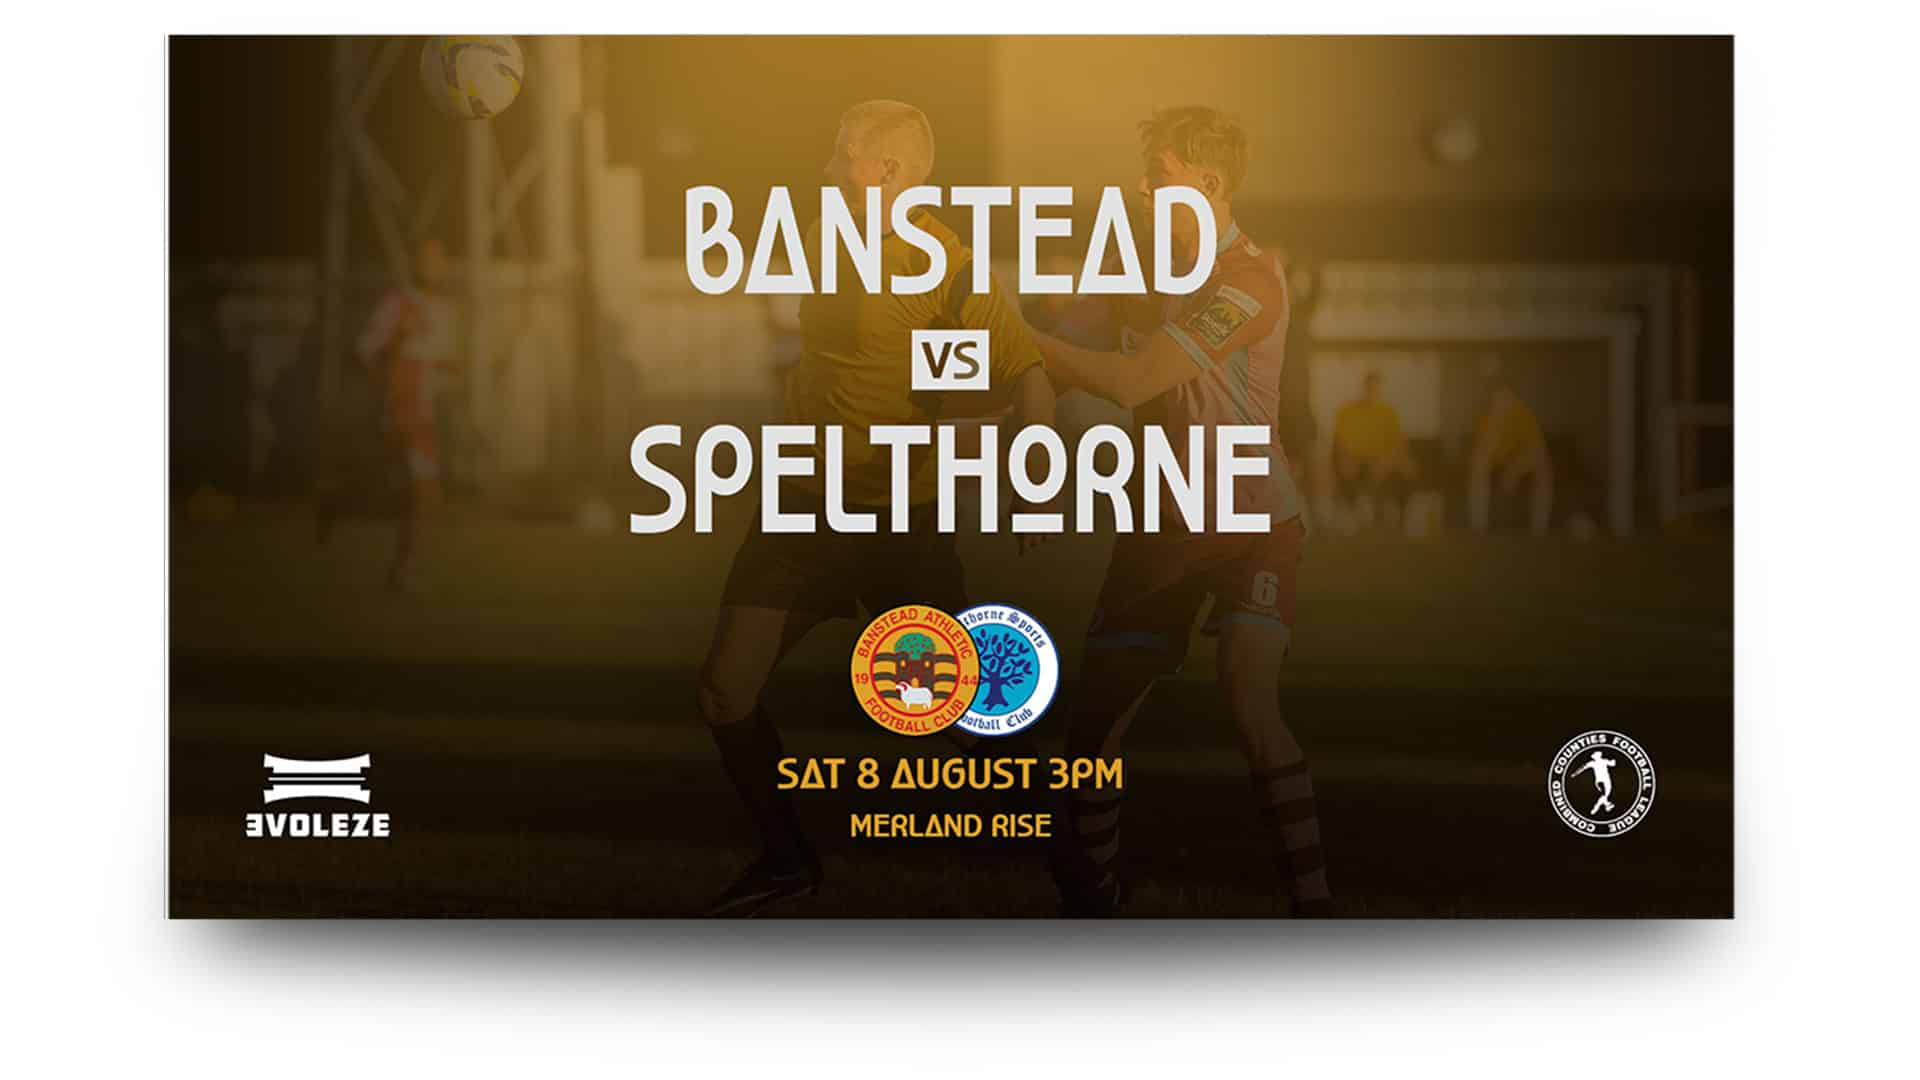 banstead athletic - matchday graphics set